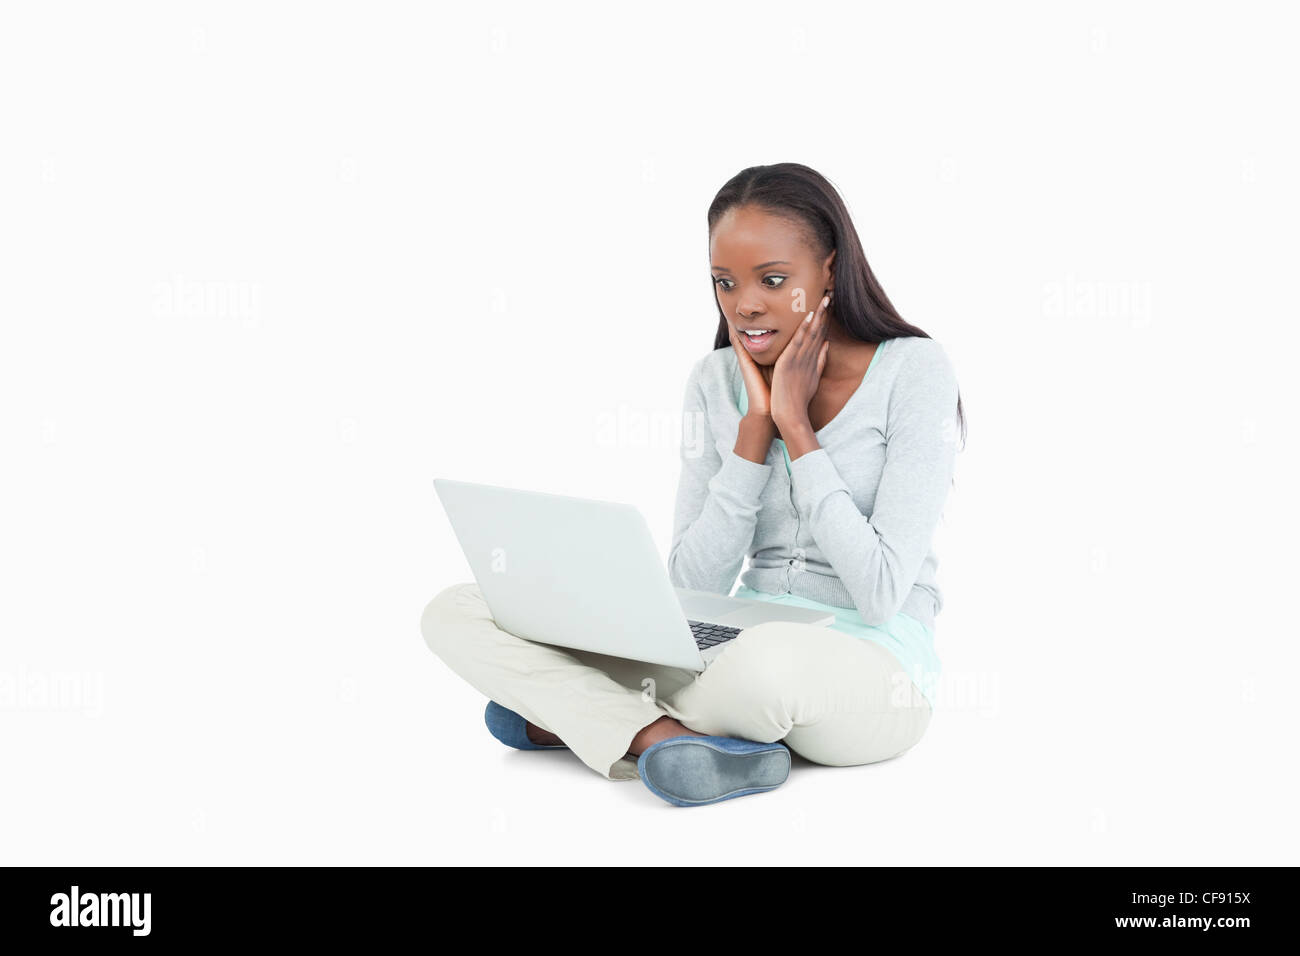 Young woman on the floor cannot believe whats on her screen - Stock Image